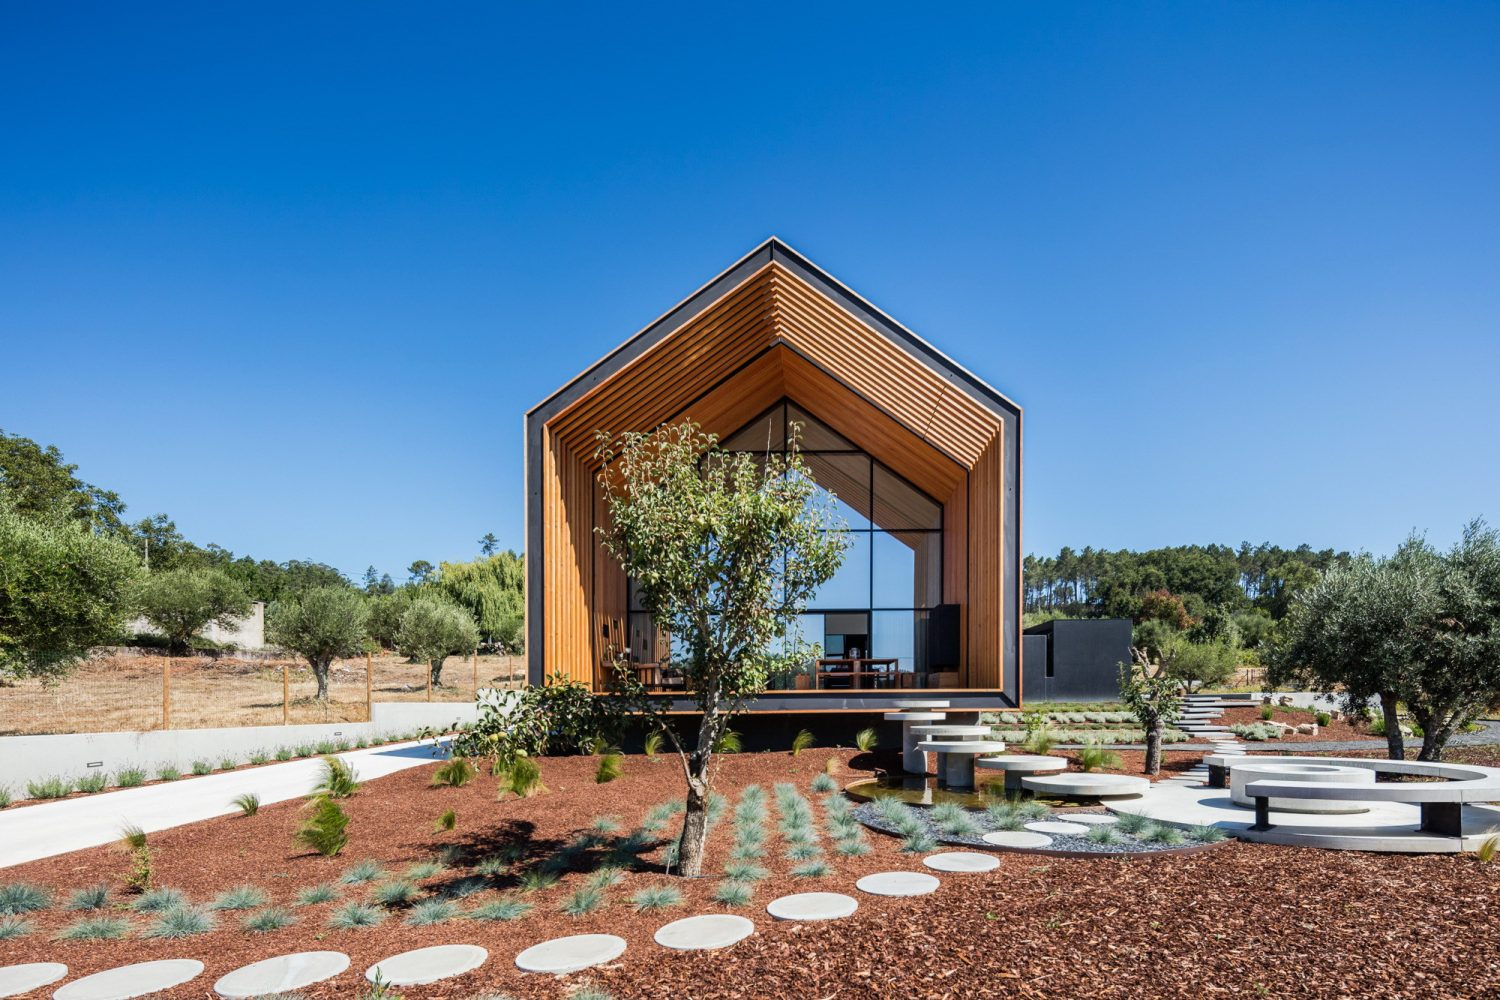 House in OHouse in Ourém by Filipe Saraiva